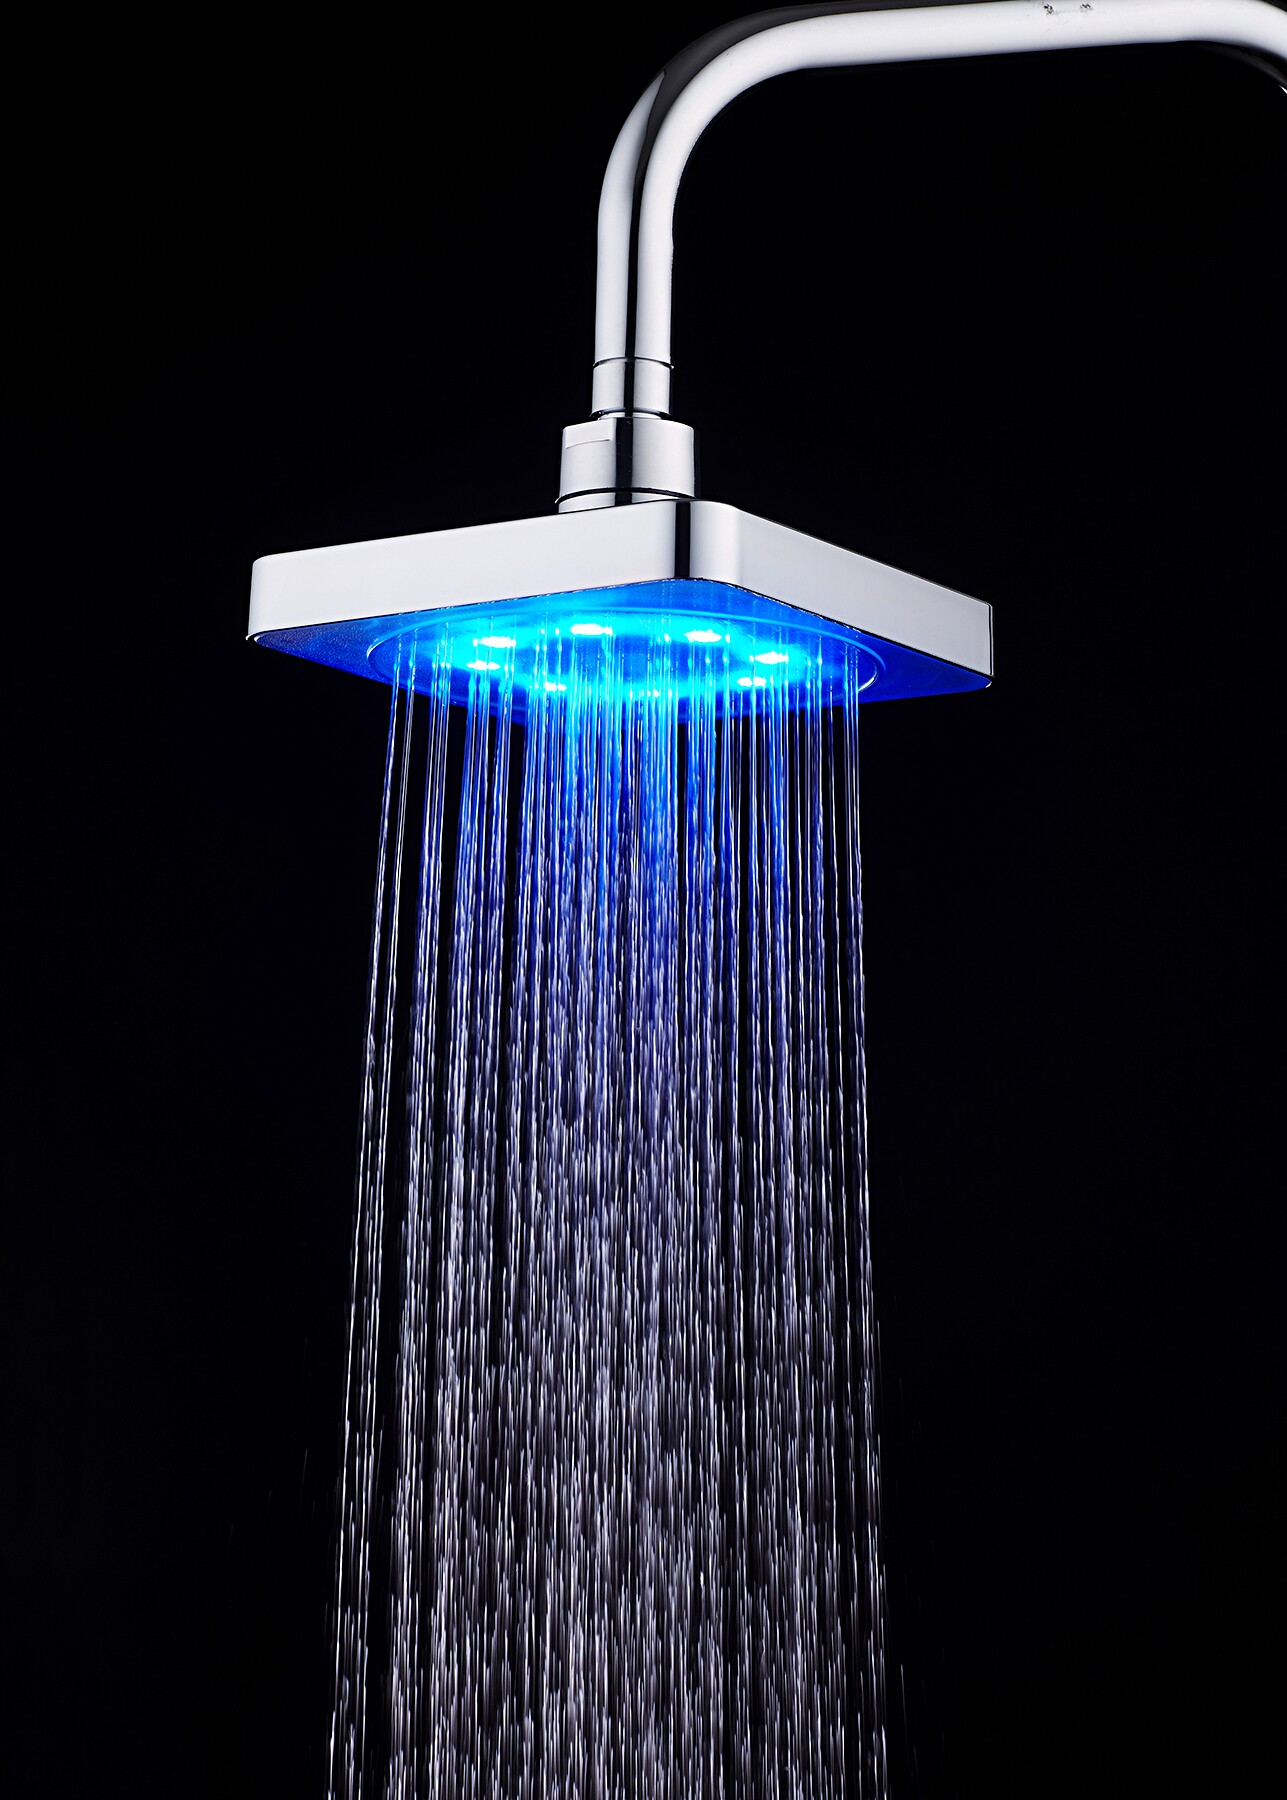 RC-S0601A High Pressure Rain Shower Head LED Color Change With Water Temperature